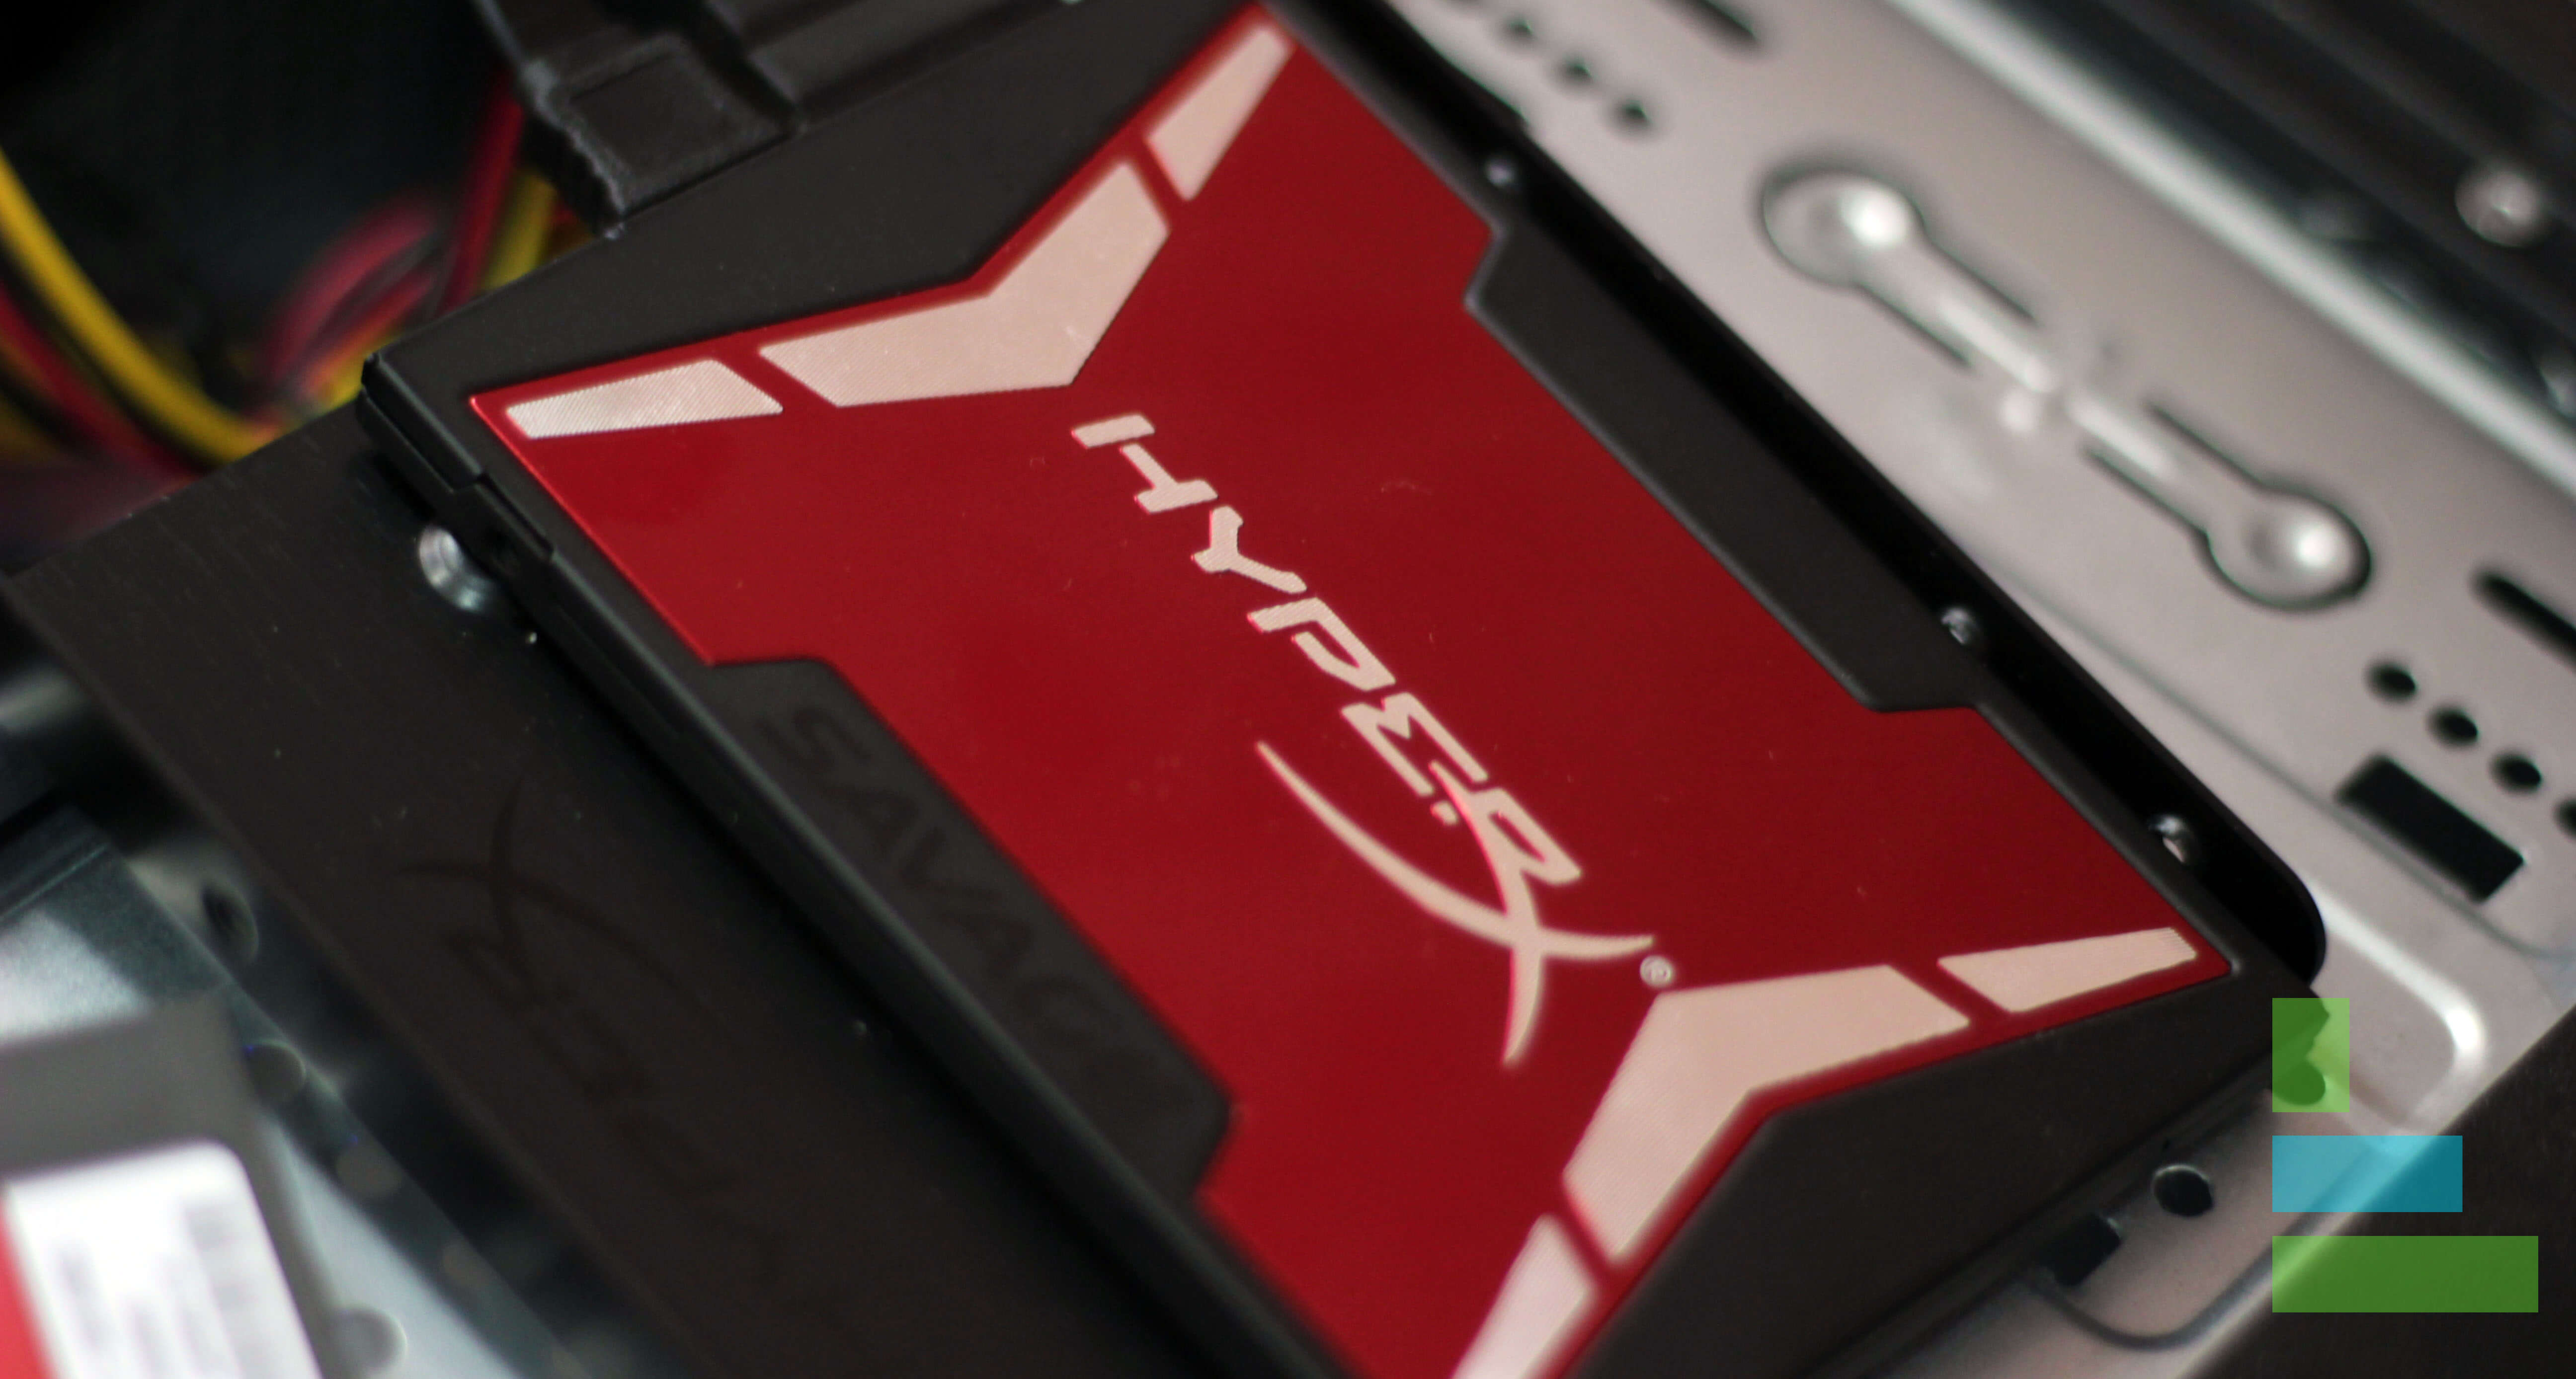 Kingston HyperX Savage SSD Kit Review